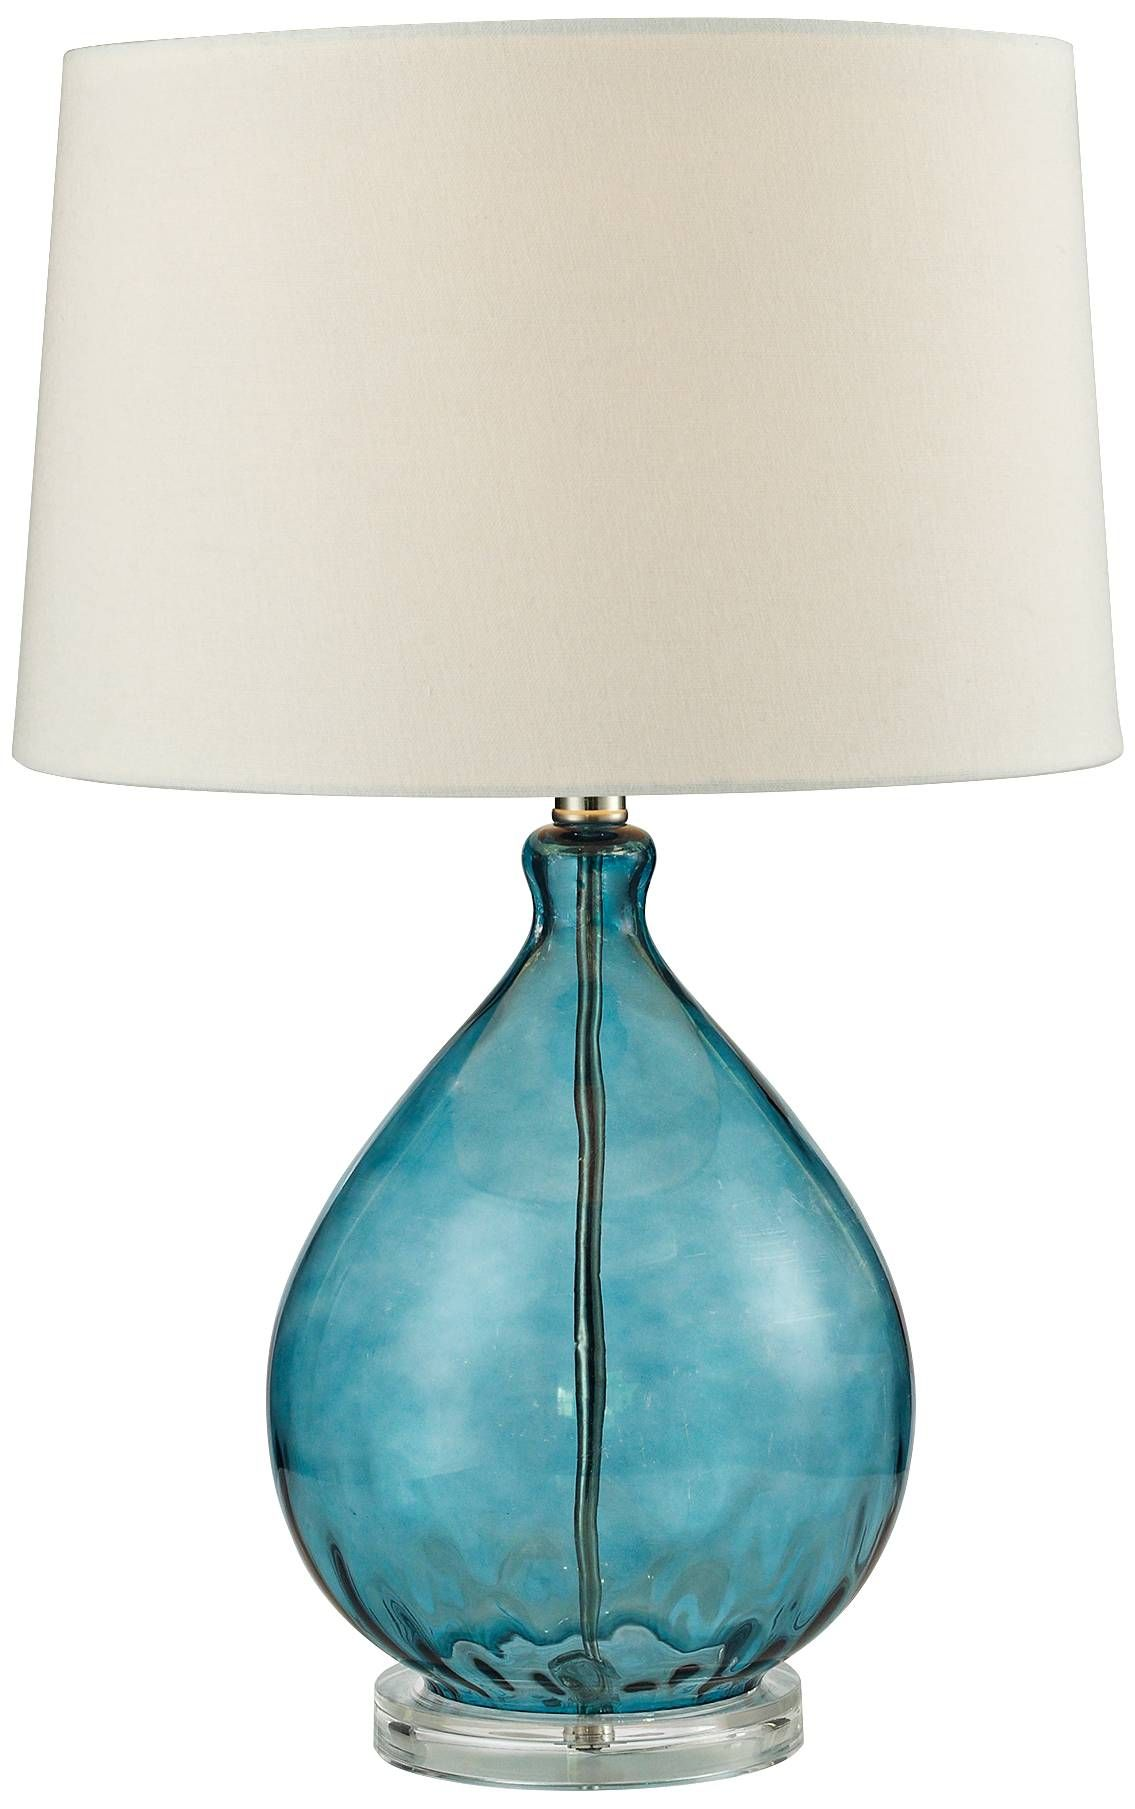 Lamp Works 701 Table Lamp With Clear And Teal Glass Set Of 2 Lighting Universe Table Lamp Lamp Glass Set